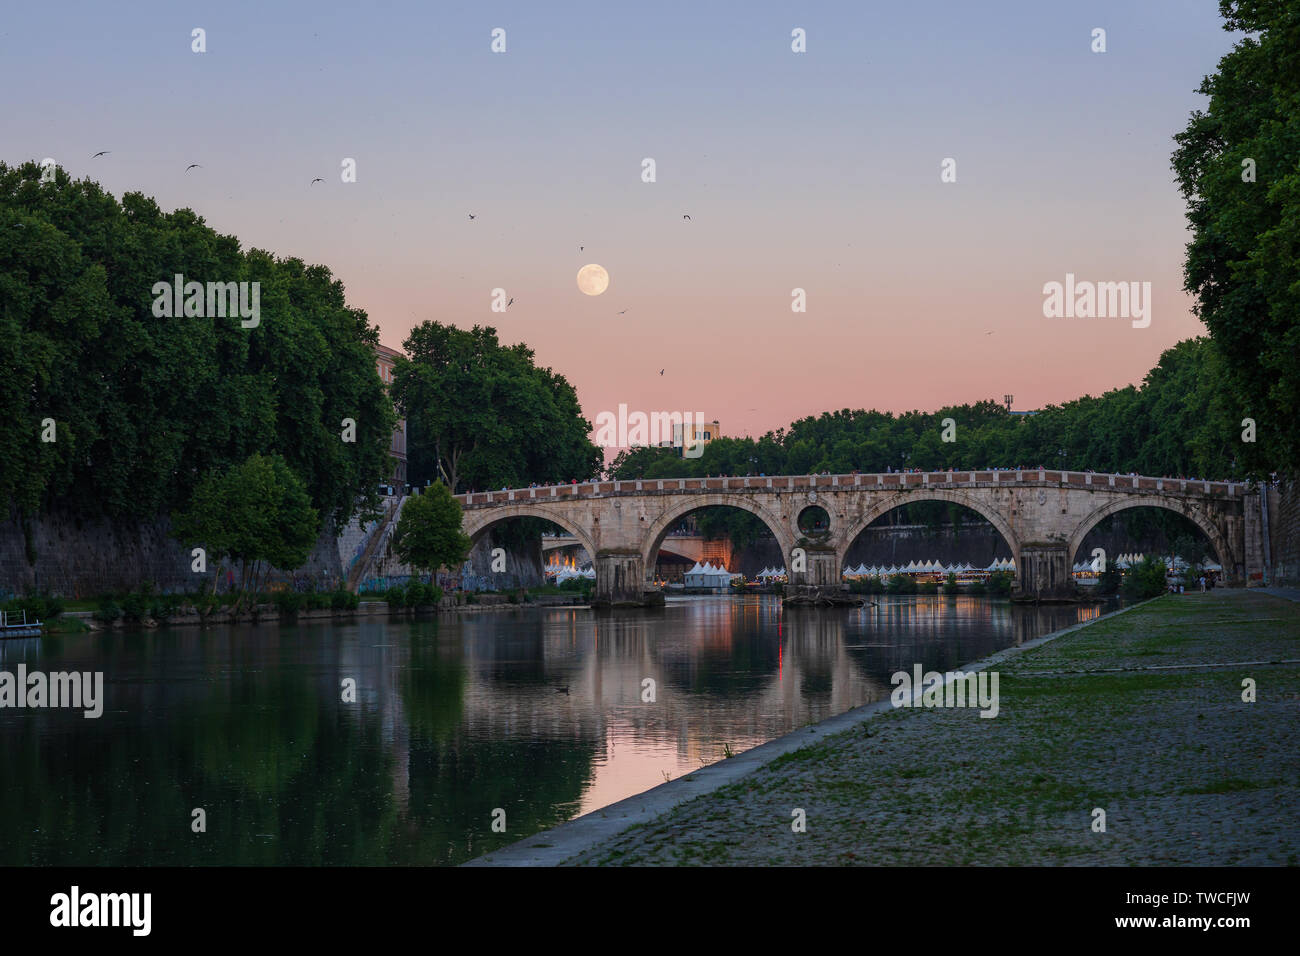 Rome, Italy. Panoramic view of Ponte Sisto at sunset, with the full moon in the background and the Tiber river flowing in the foreground. - Stock Image